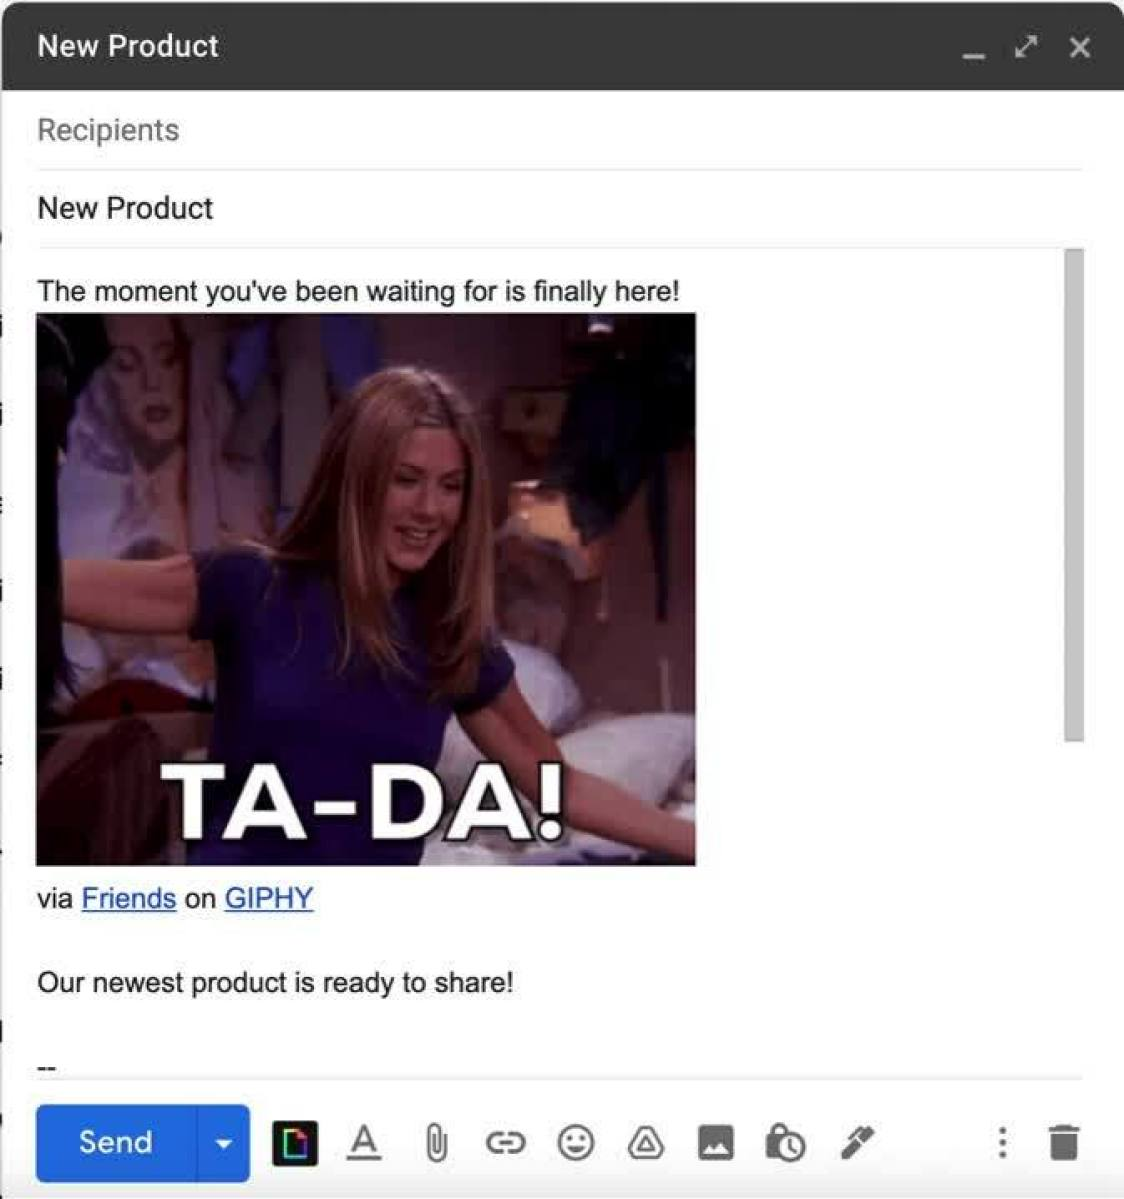 GIF in an email